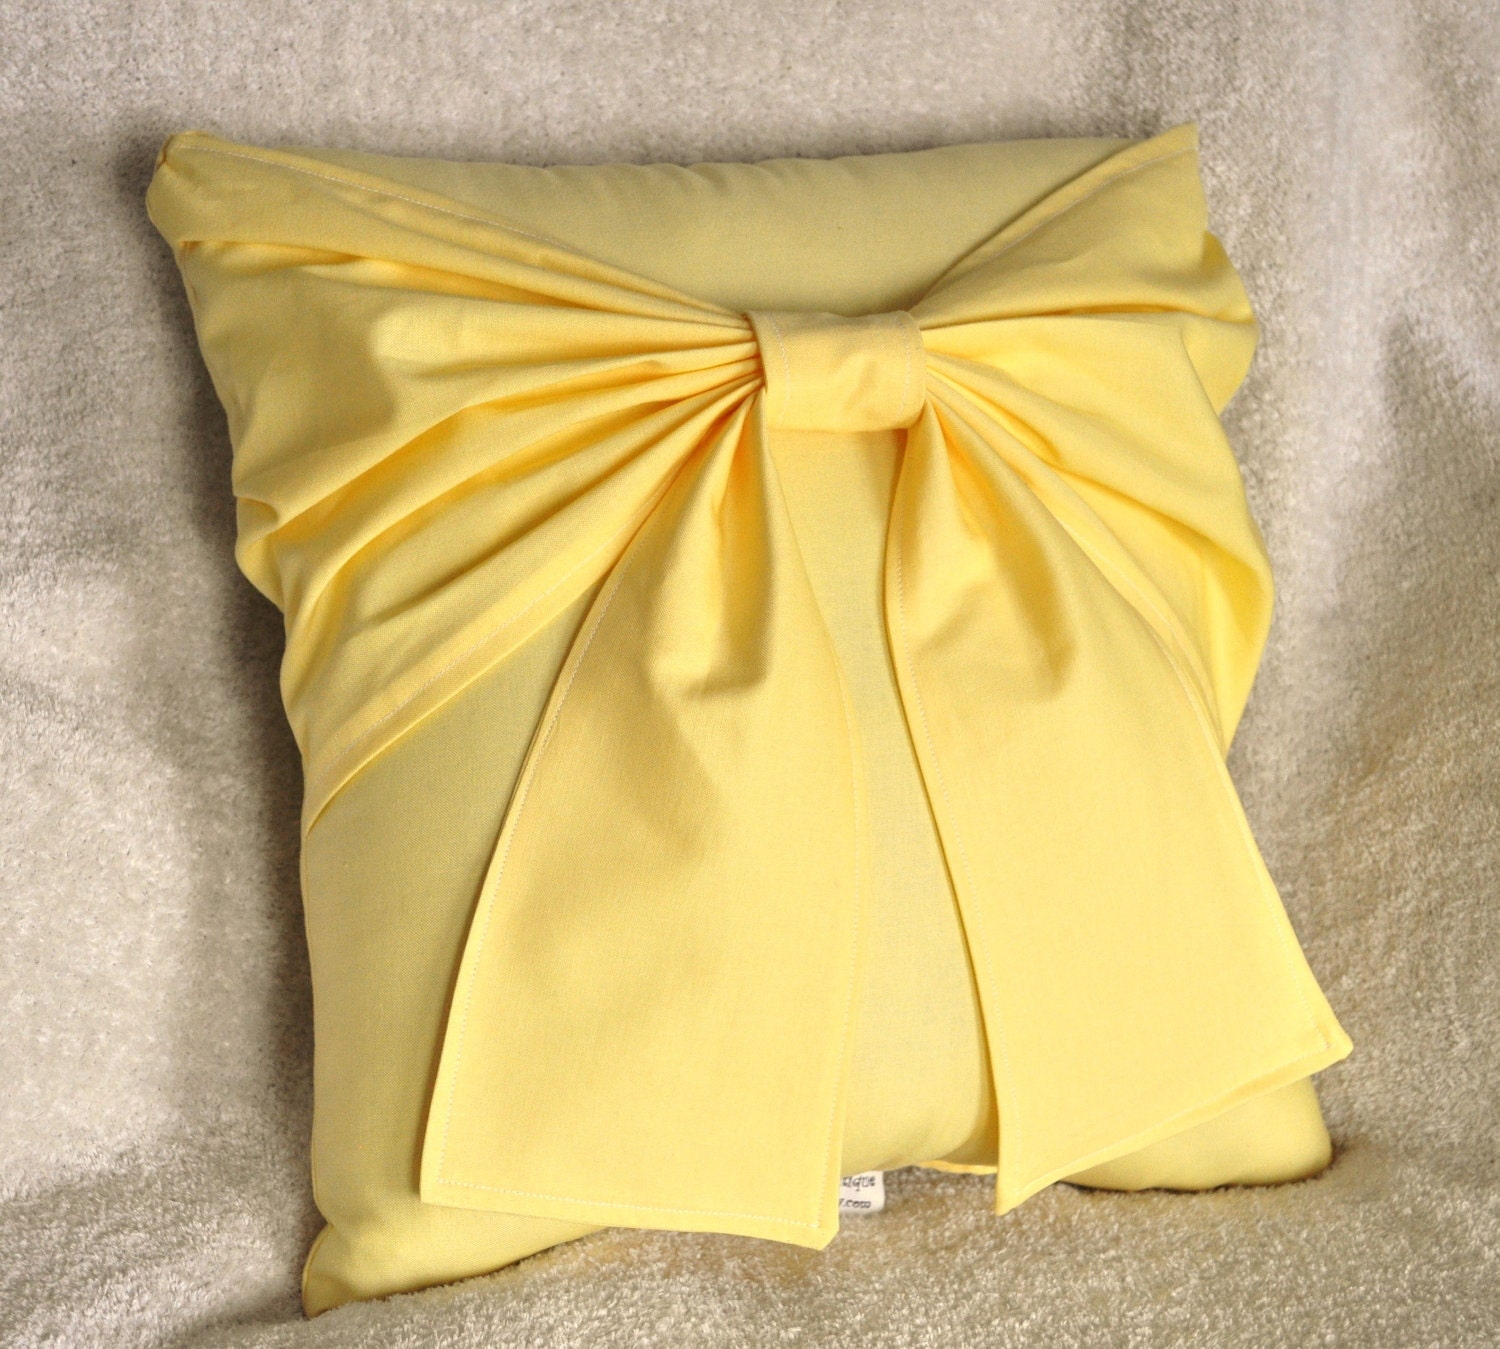 Decorative Throw Pillows Etsy : Yellow Bow Pillow Decorative Pillow